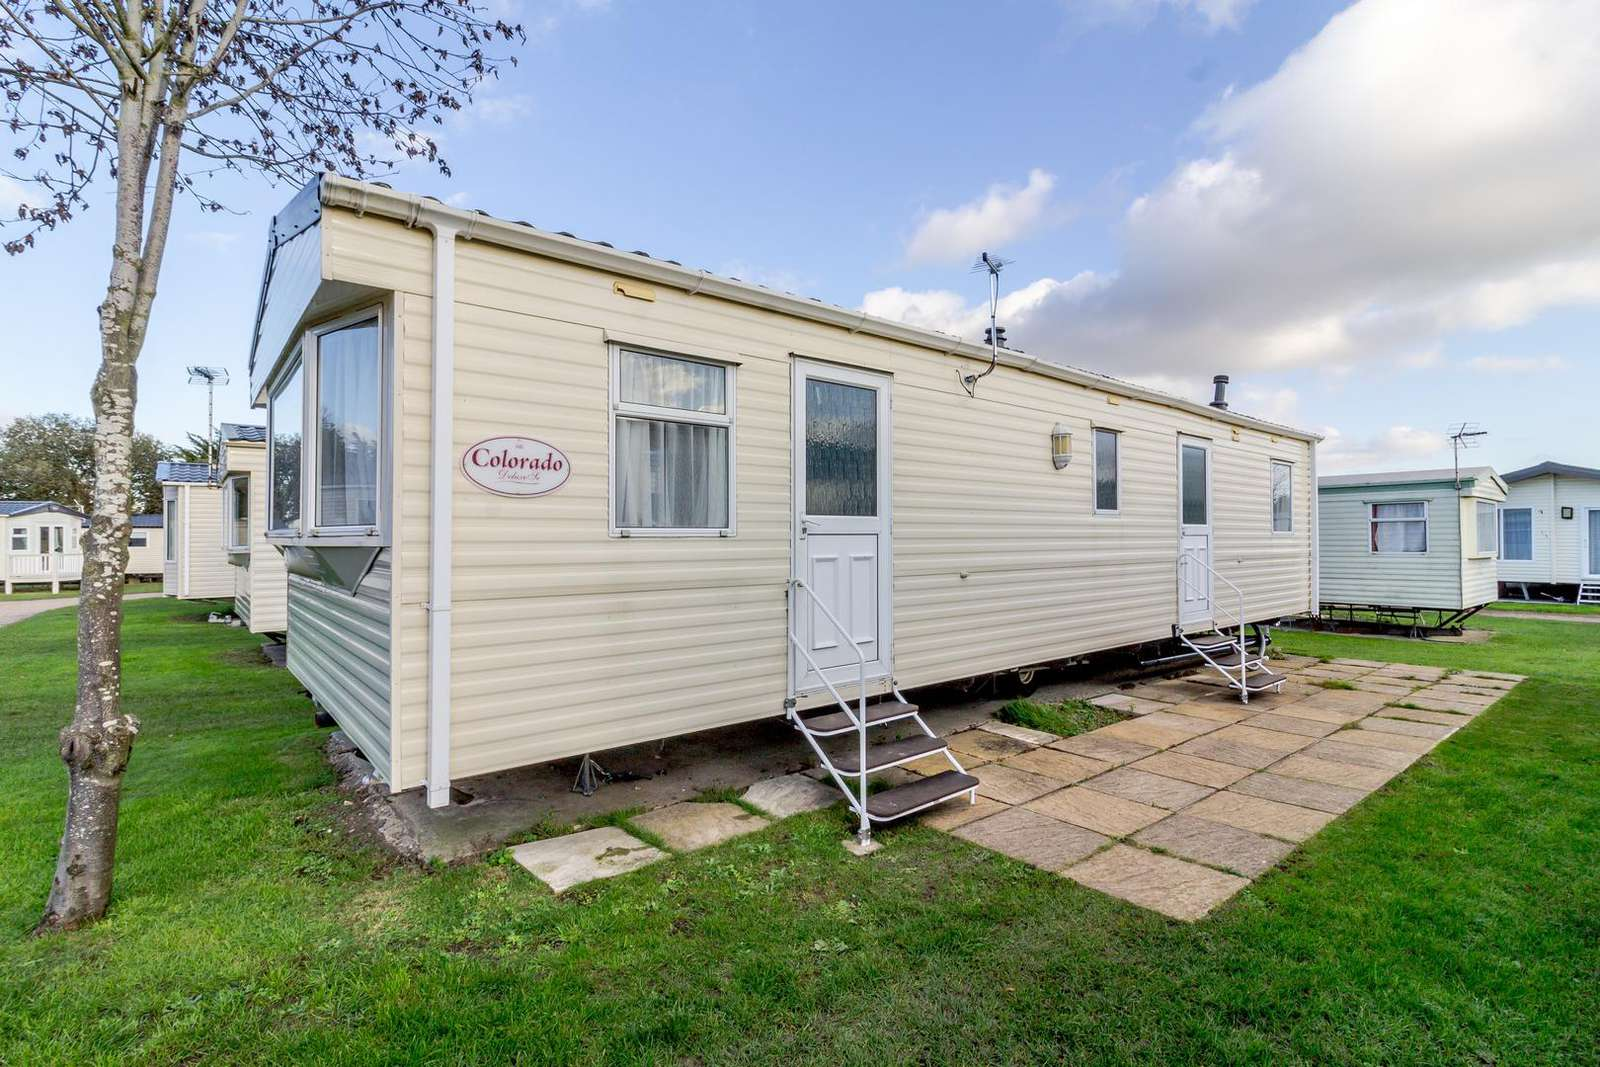 10038RP – Romans Parade area (Yare Side) 3 bed, 8 berth caravan. Emerald rated. - property